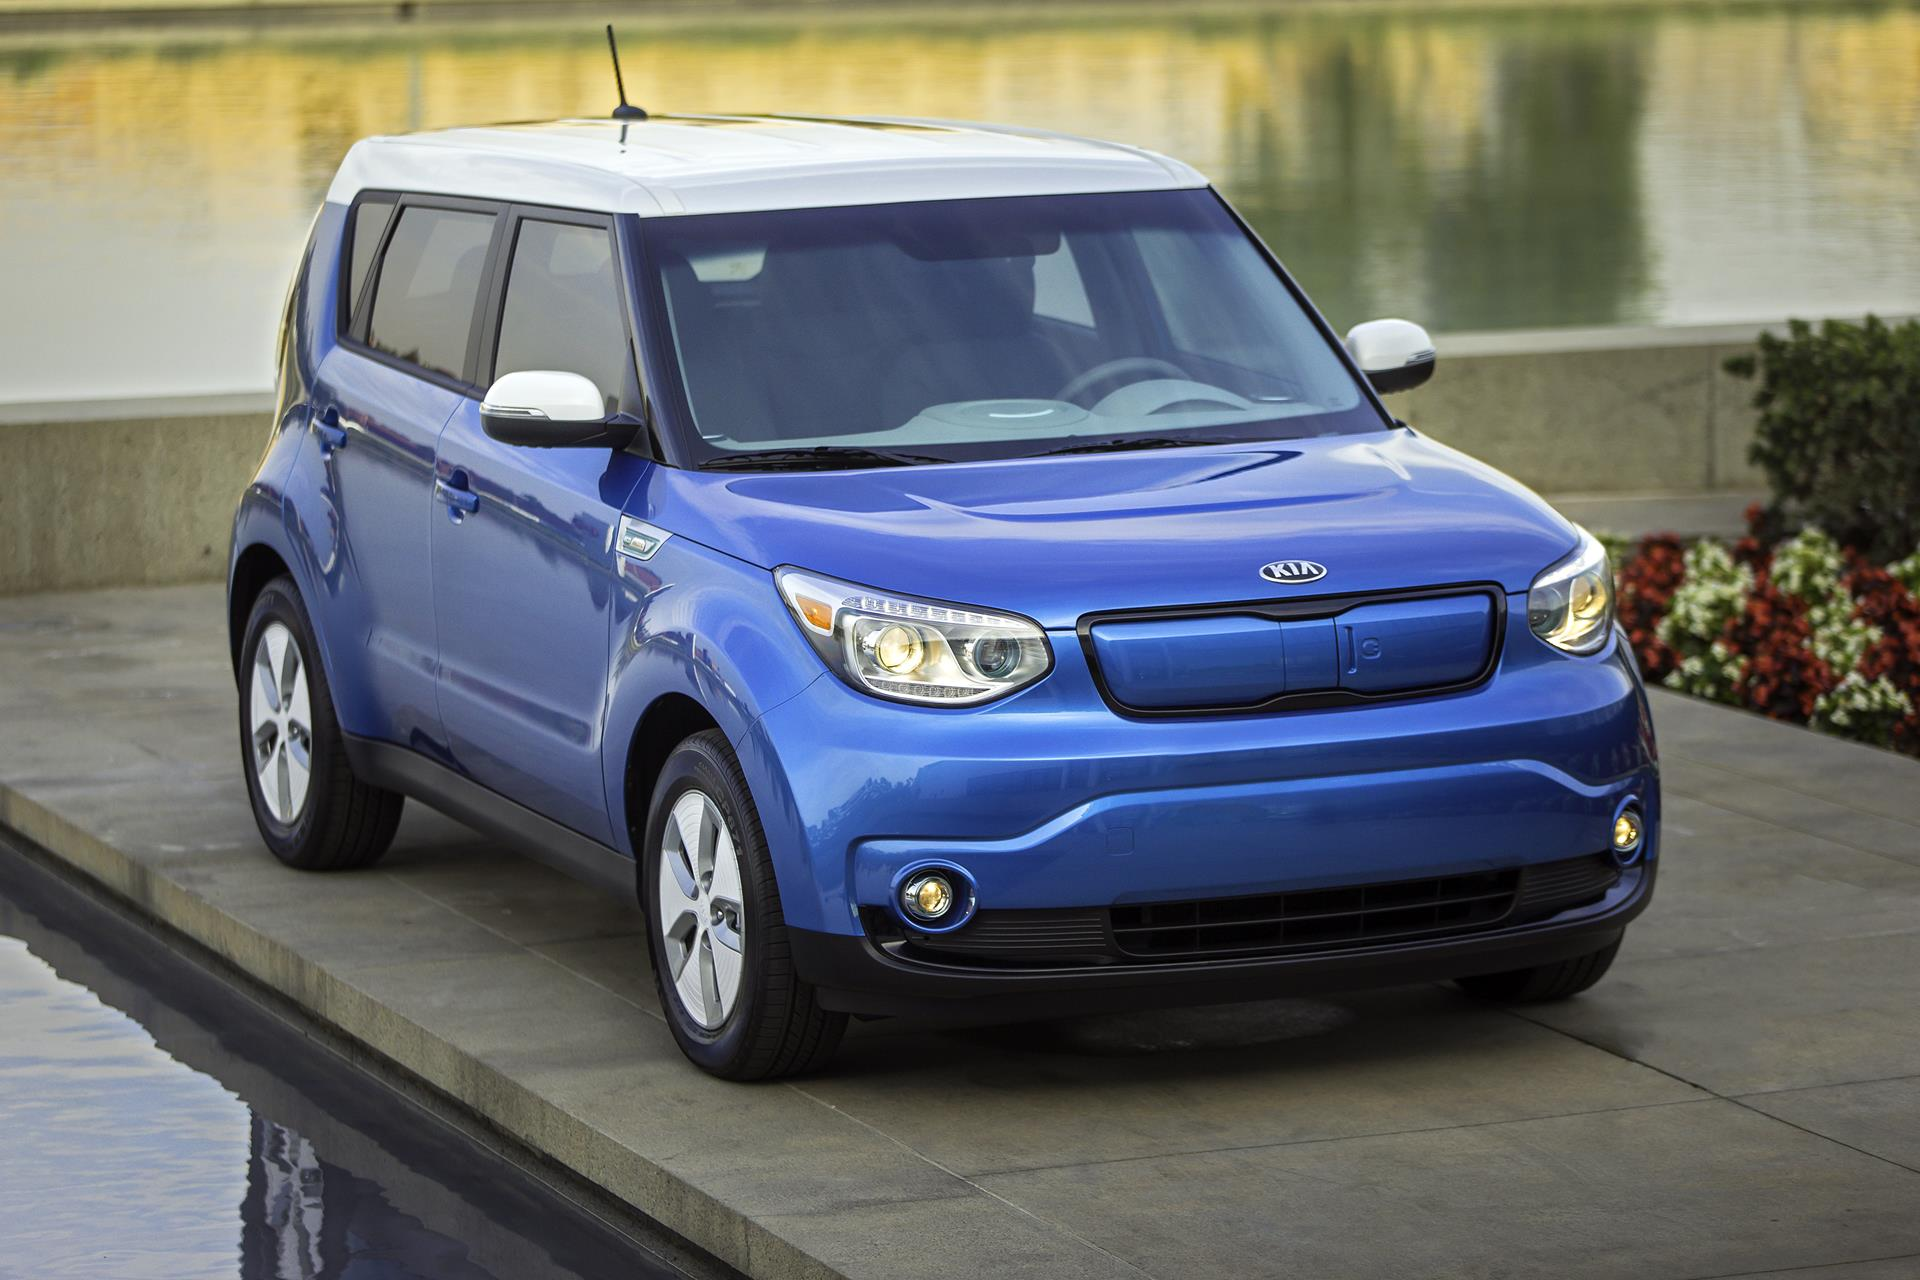 2016 kia soul ev technical specifications and data engine dimensions and mechanical details. Black Bedroom Furniture Sets. Home Design Ideas